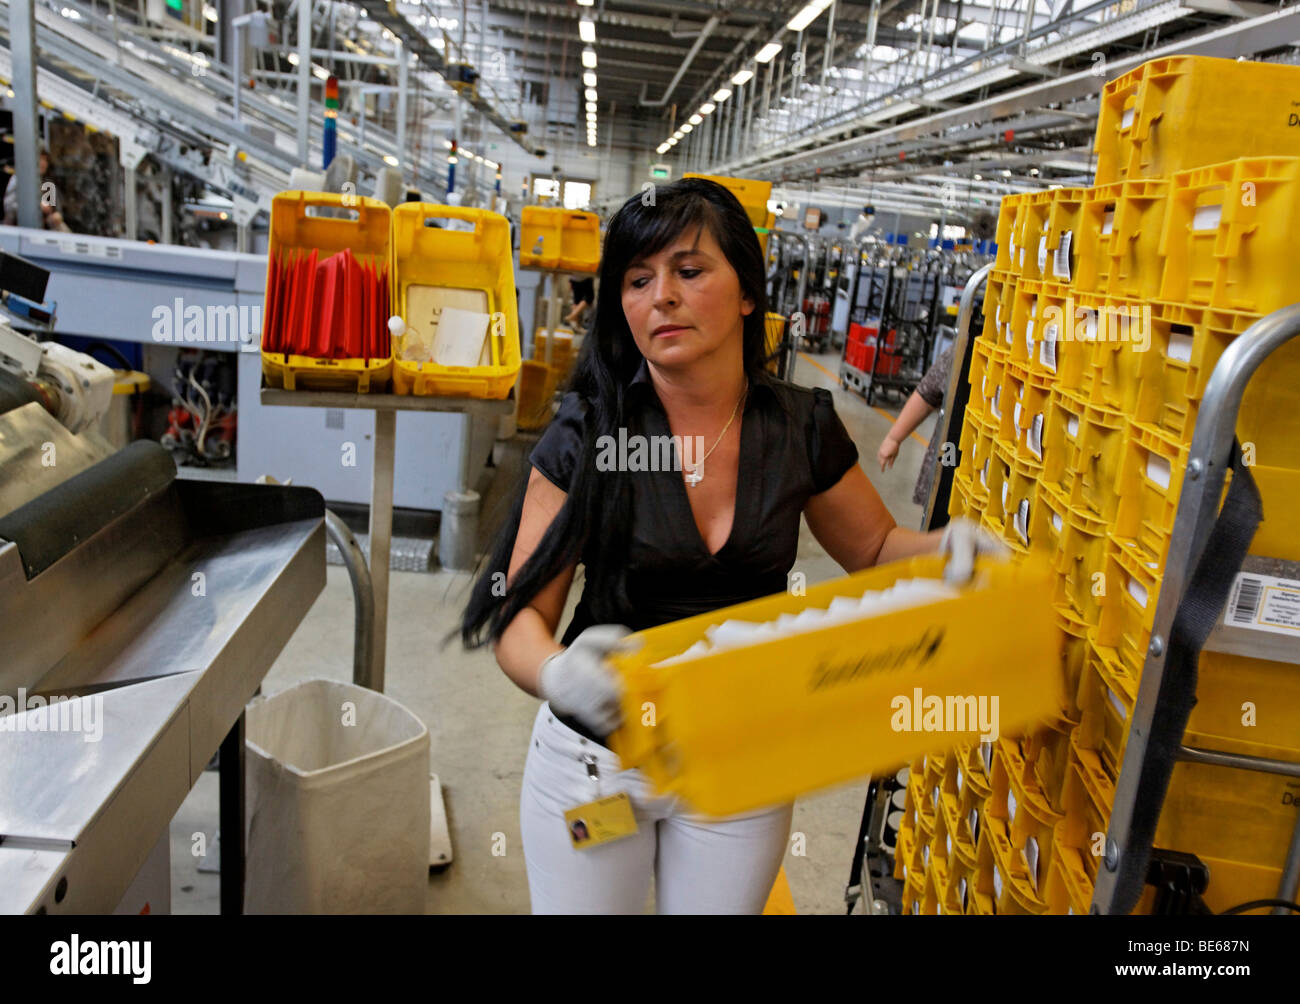 Nada Jumic works in the mail sorting center of the regional post office in Waiblingen, Baden-Wuerttemberg, Germany, Stock Photo